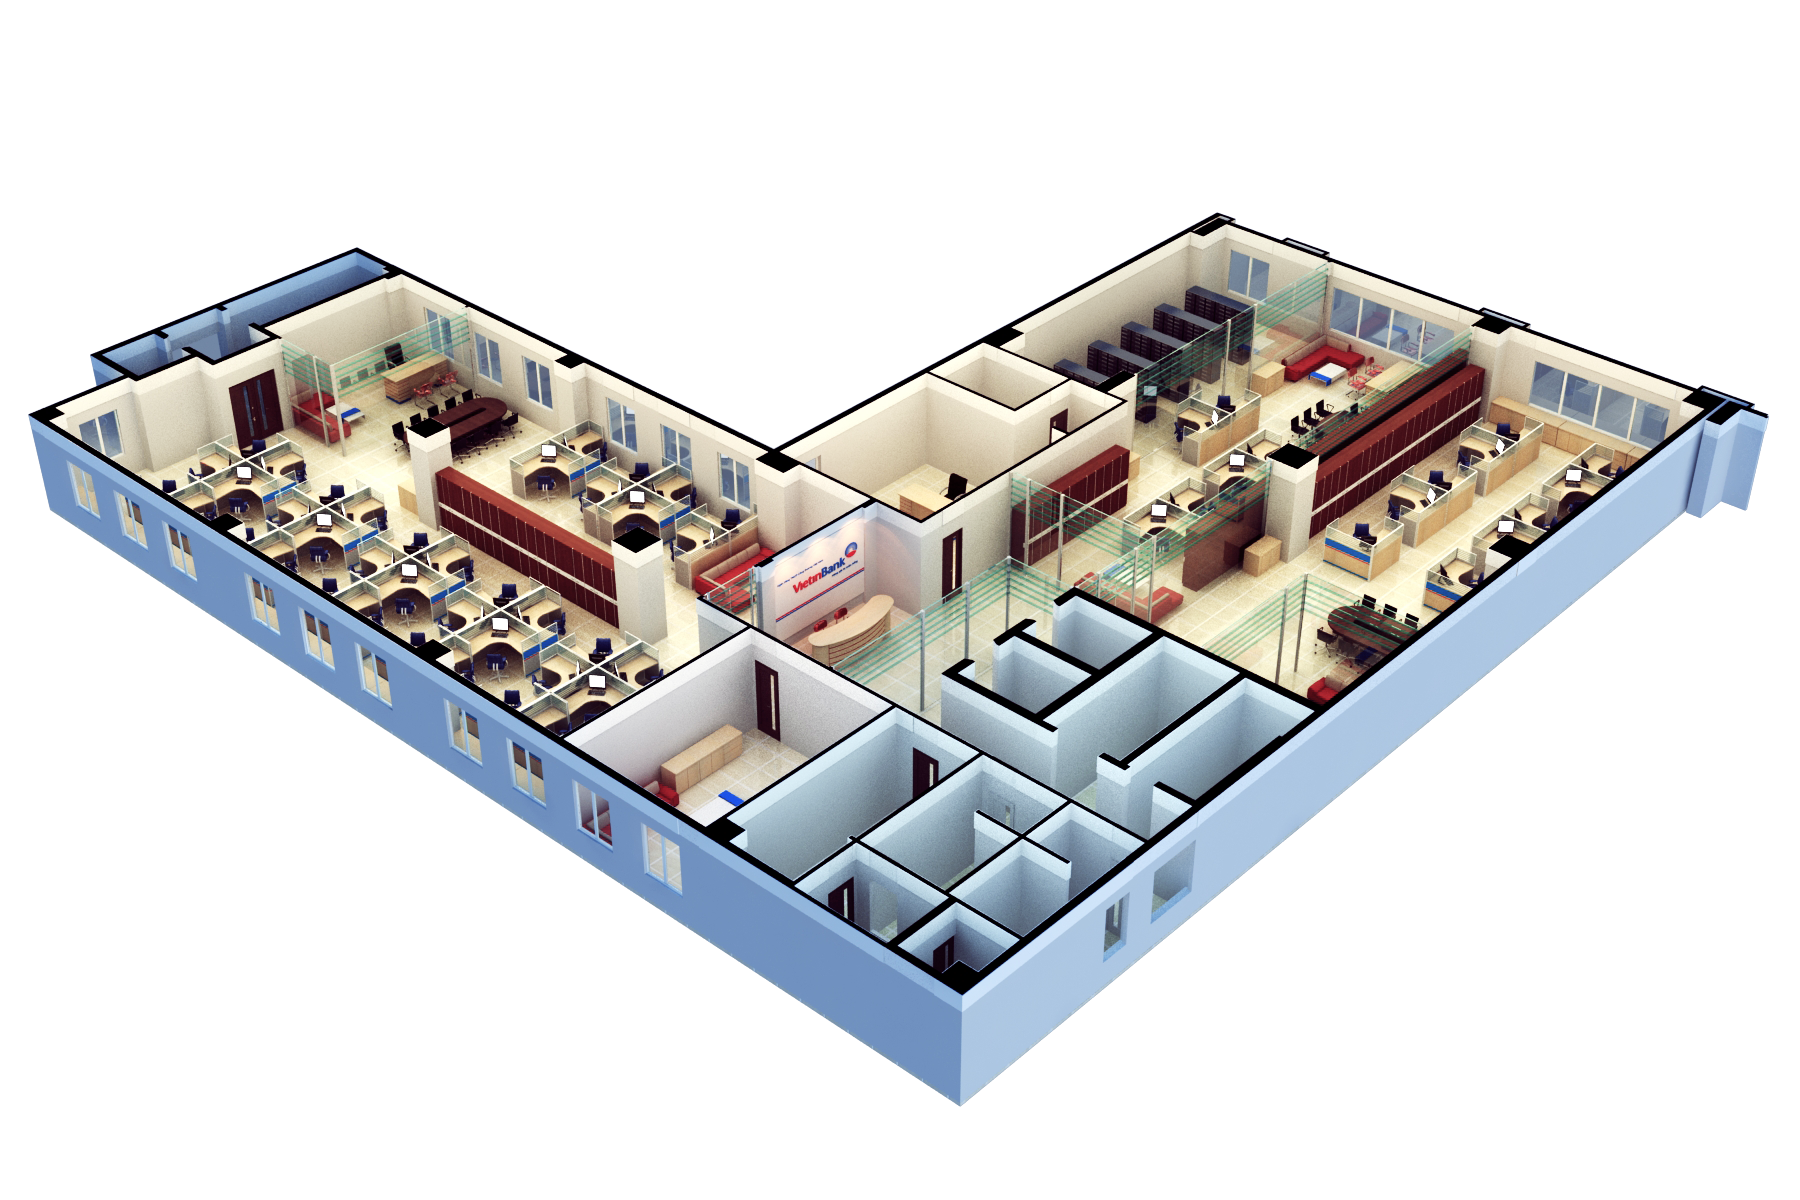 office space plan. The Final Approved Space Plan Is What You Can Count On MBK Office To Deliver. We Are Able Convert Our Drawings Into A PDF And Email Them For Share